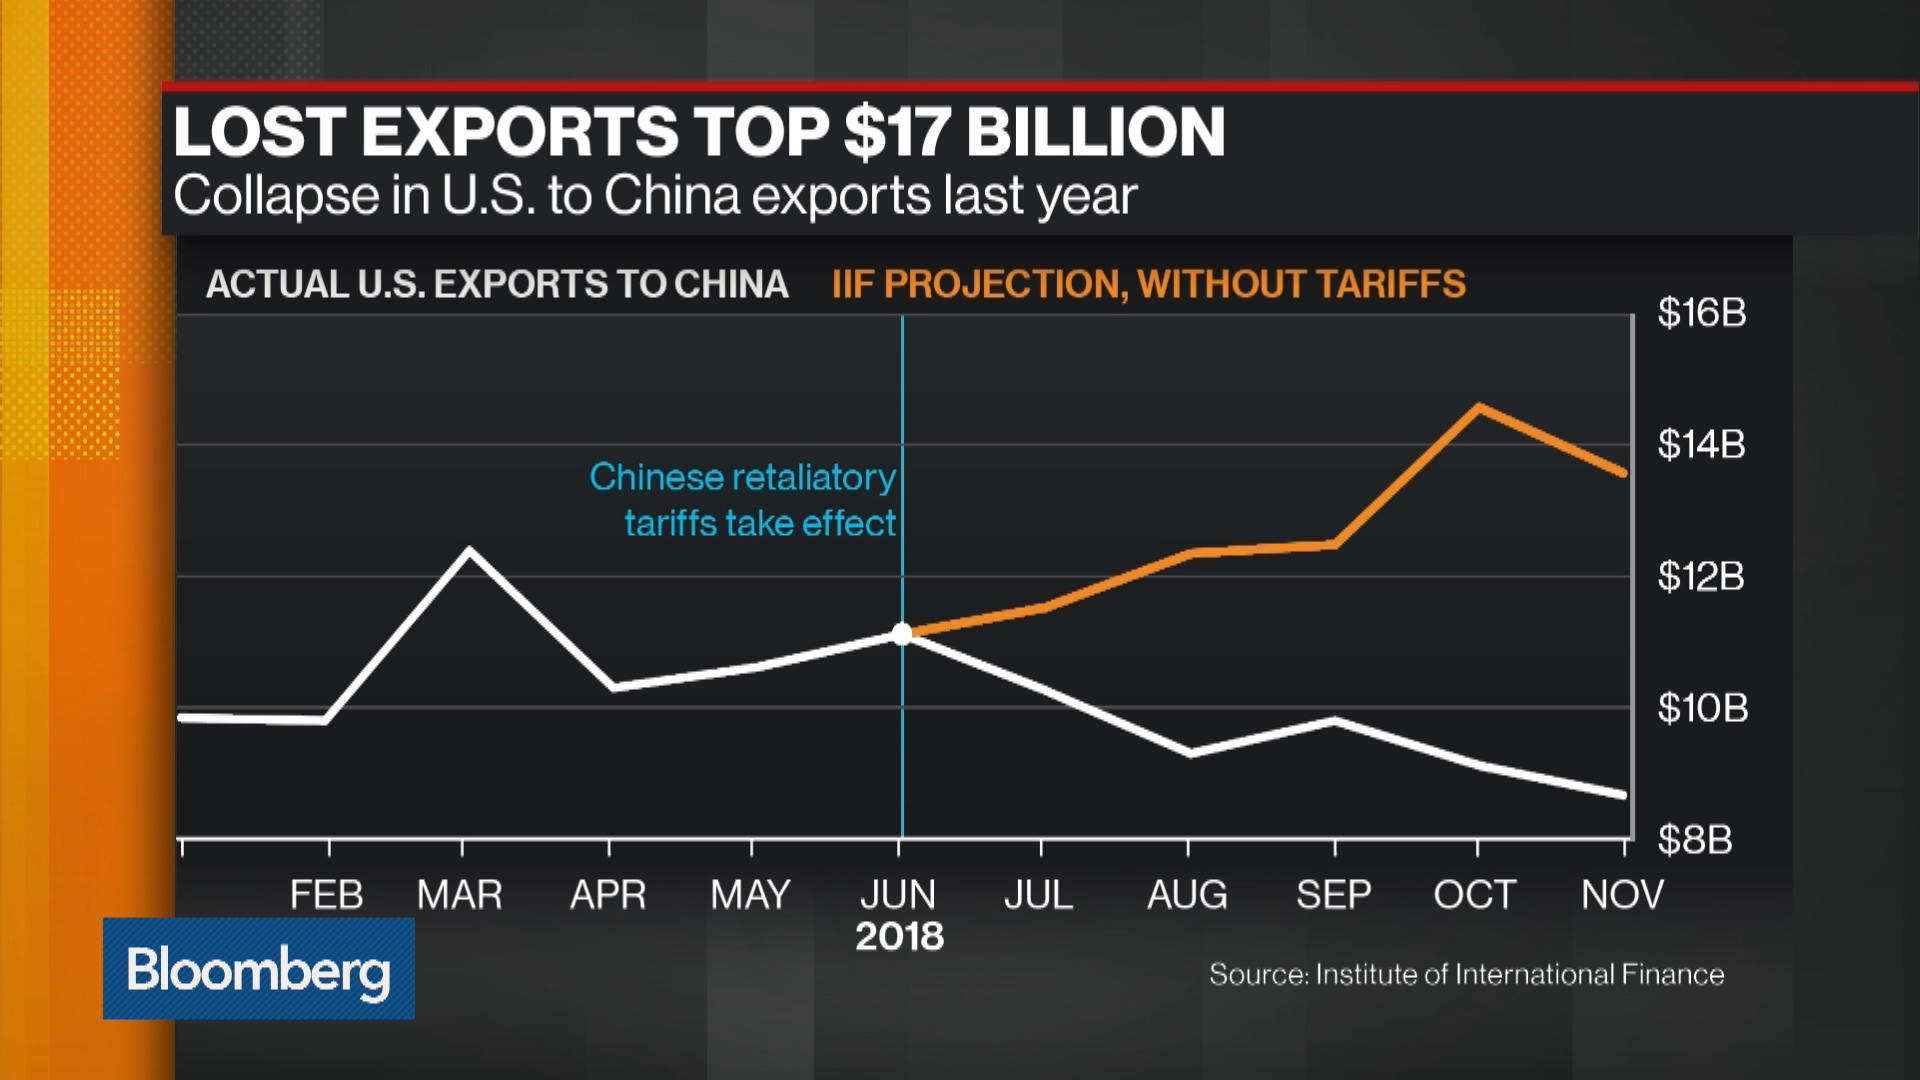 Sen. Lankford on China Tariff Relief, Brexit and Huawei